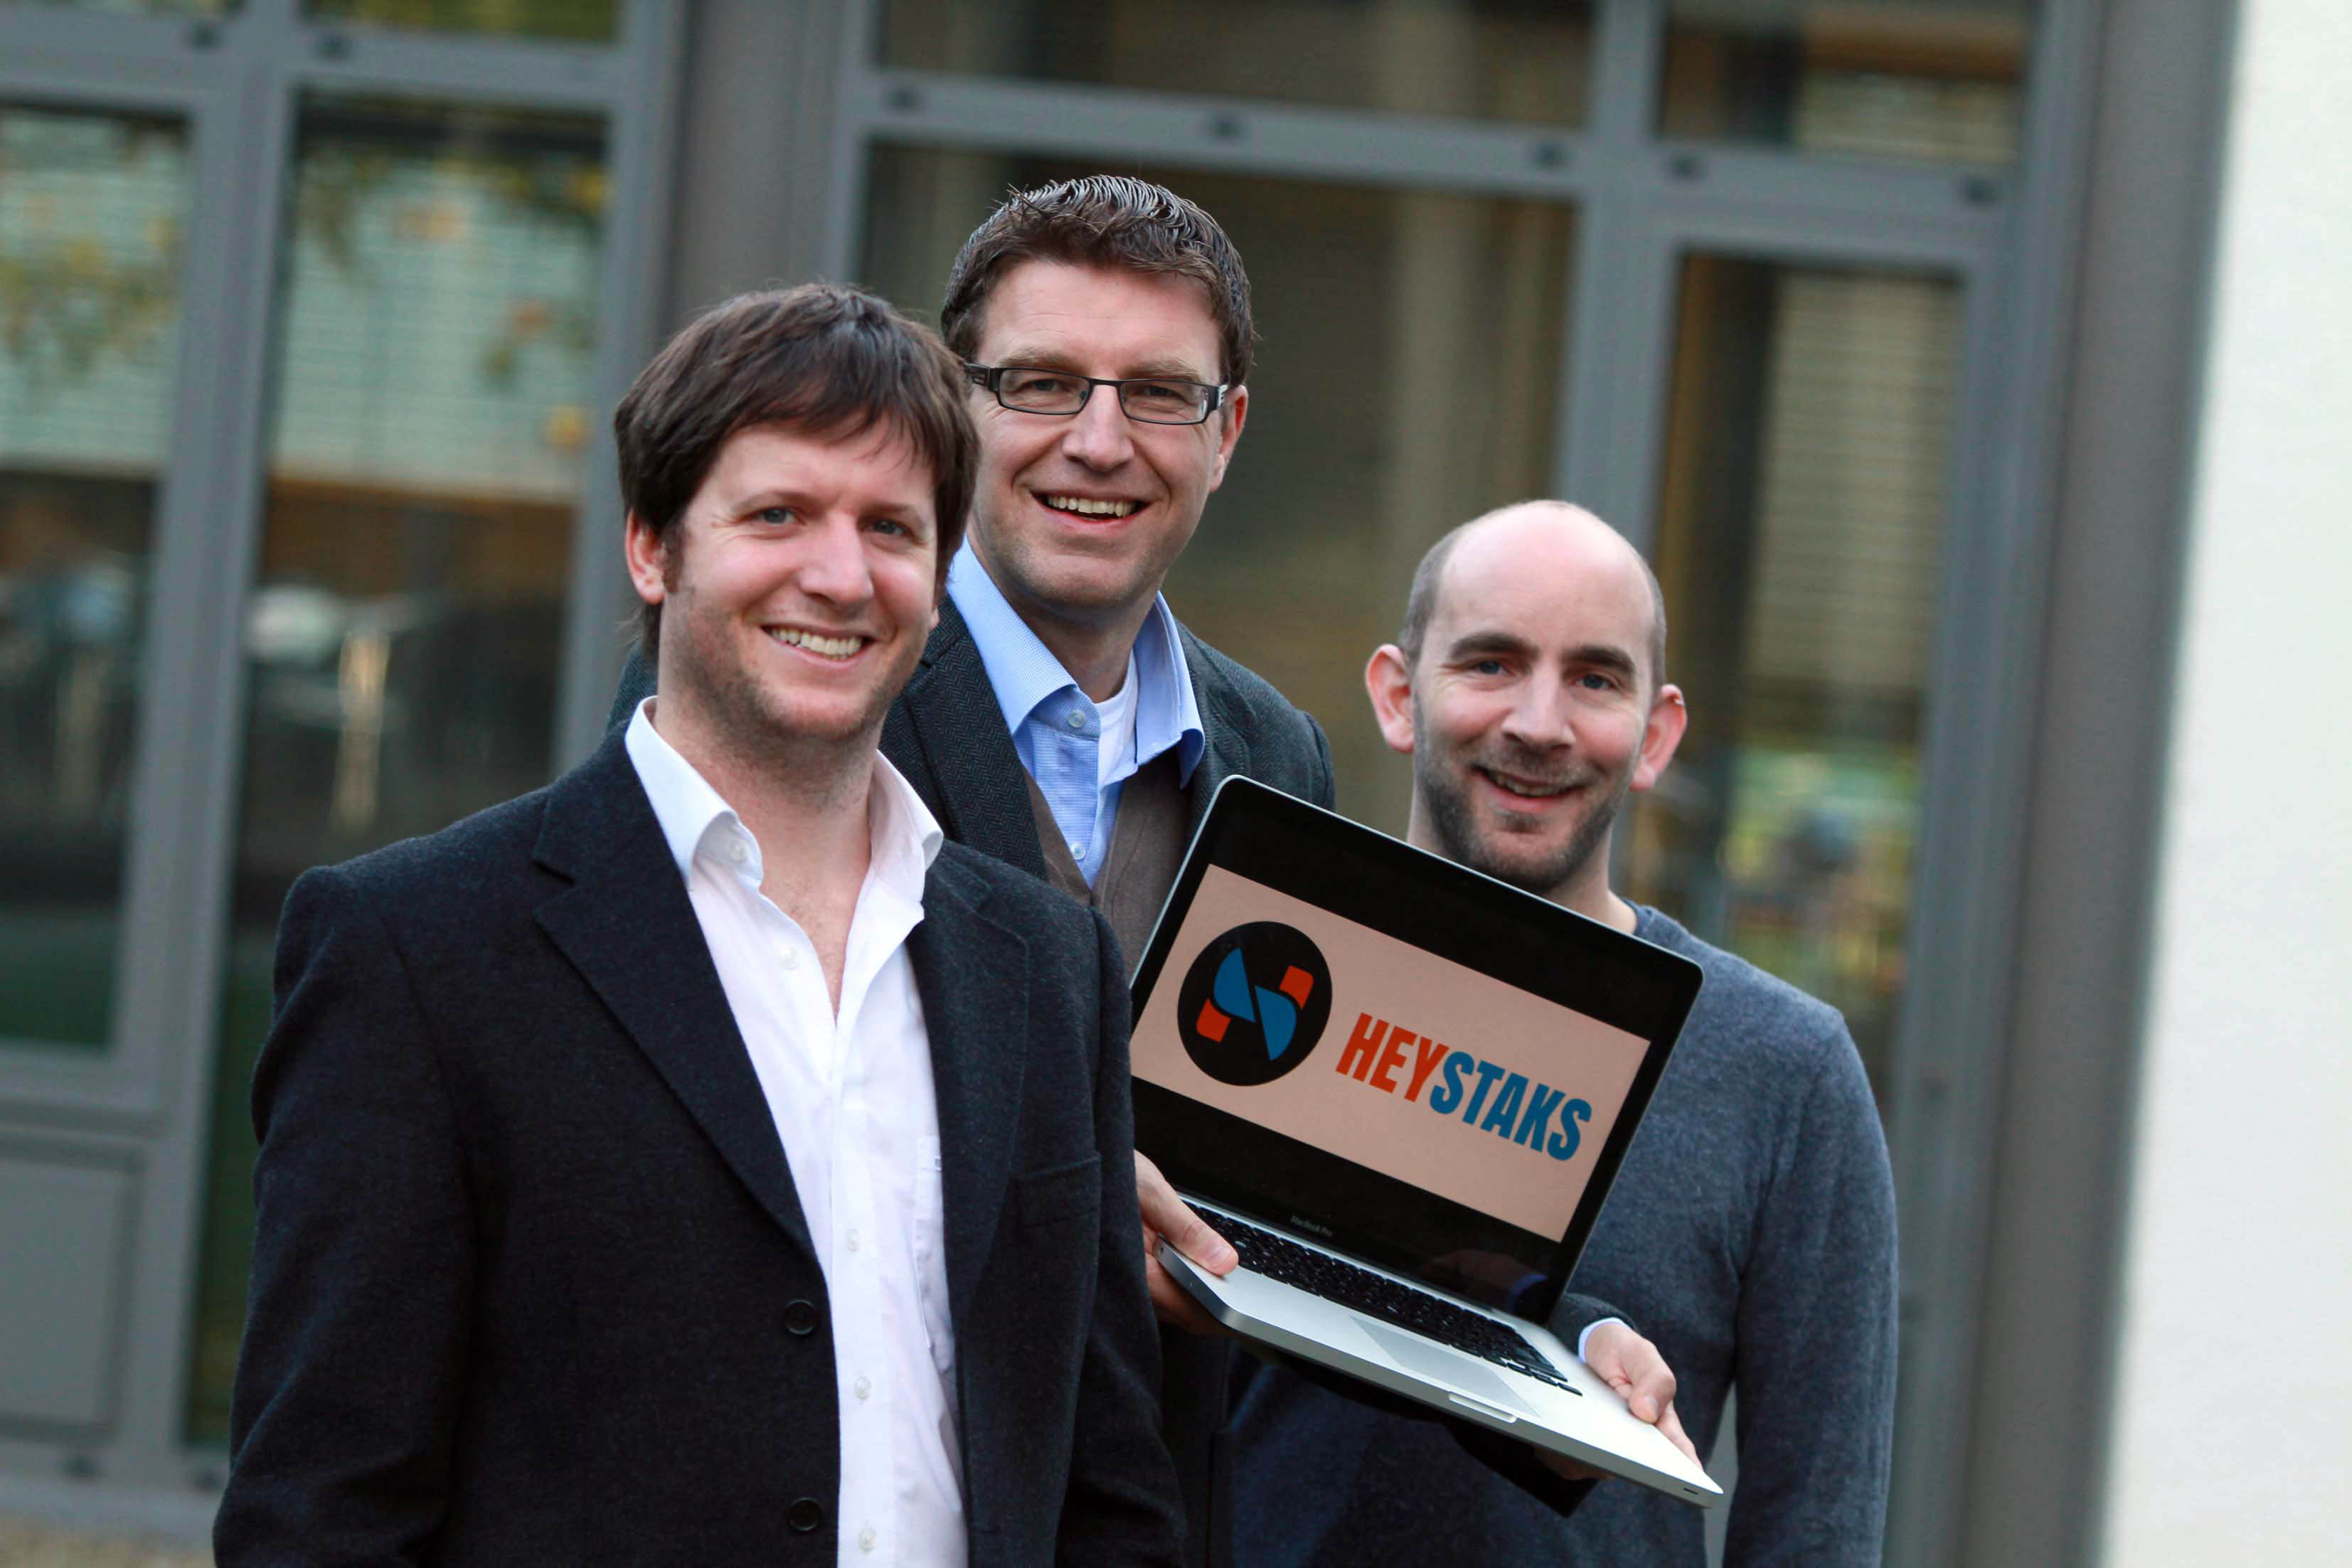 Pictured are (l-r) Dr Maurice Coyle, CEO and co-founder, HeyStaks; Professor Barry Smyth, chief scientist and co-founder, HeyStaks and Dr Peter Briggs, CTO and co-founder, HeyStaks